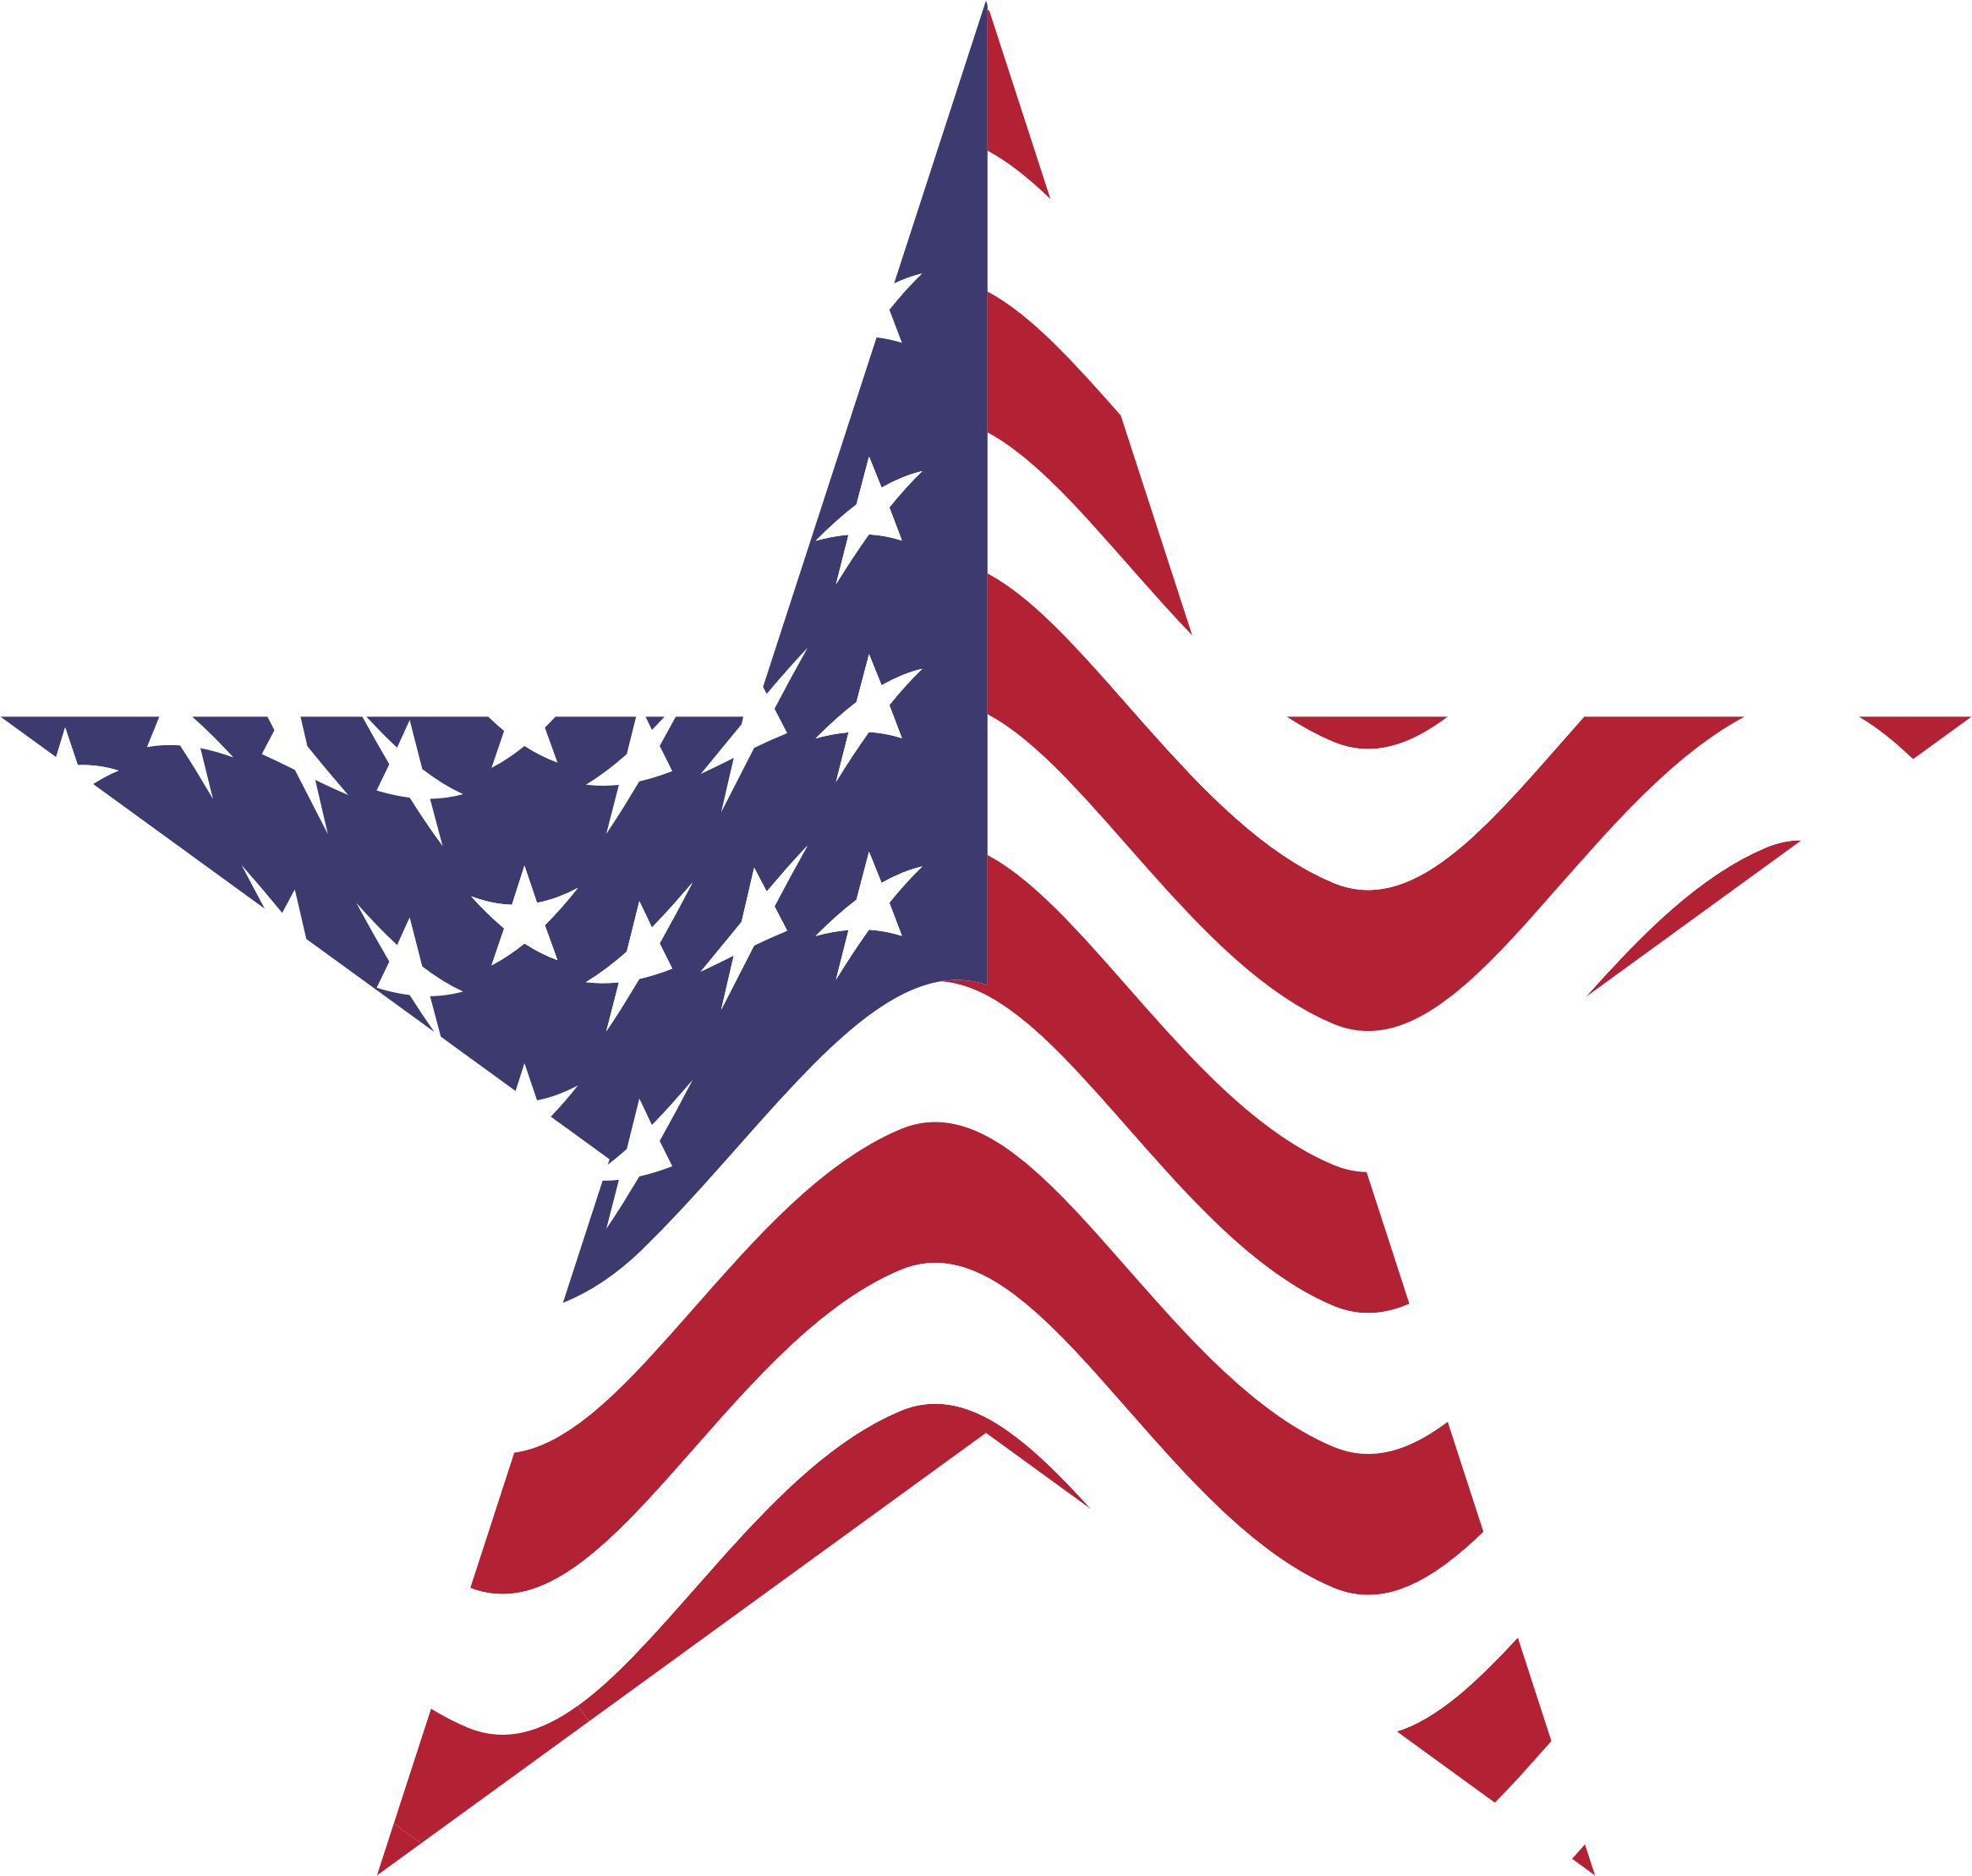 American flag star. Wheel clipart raffle